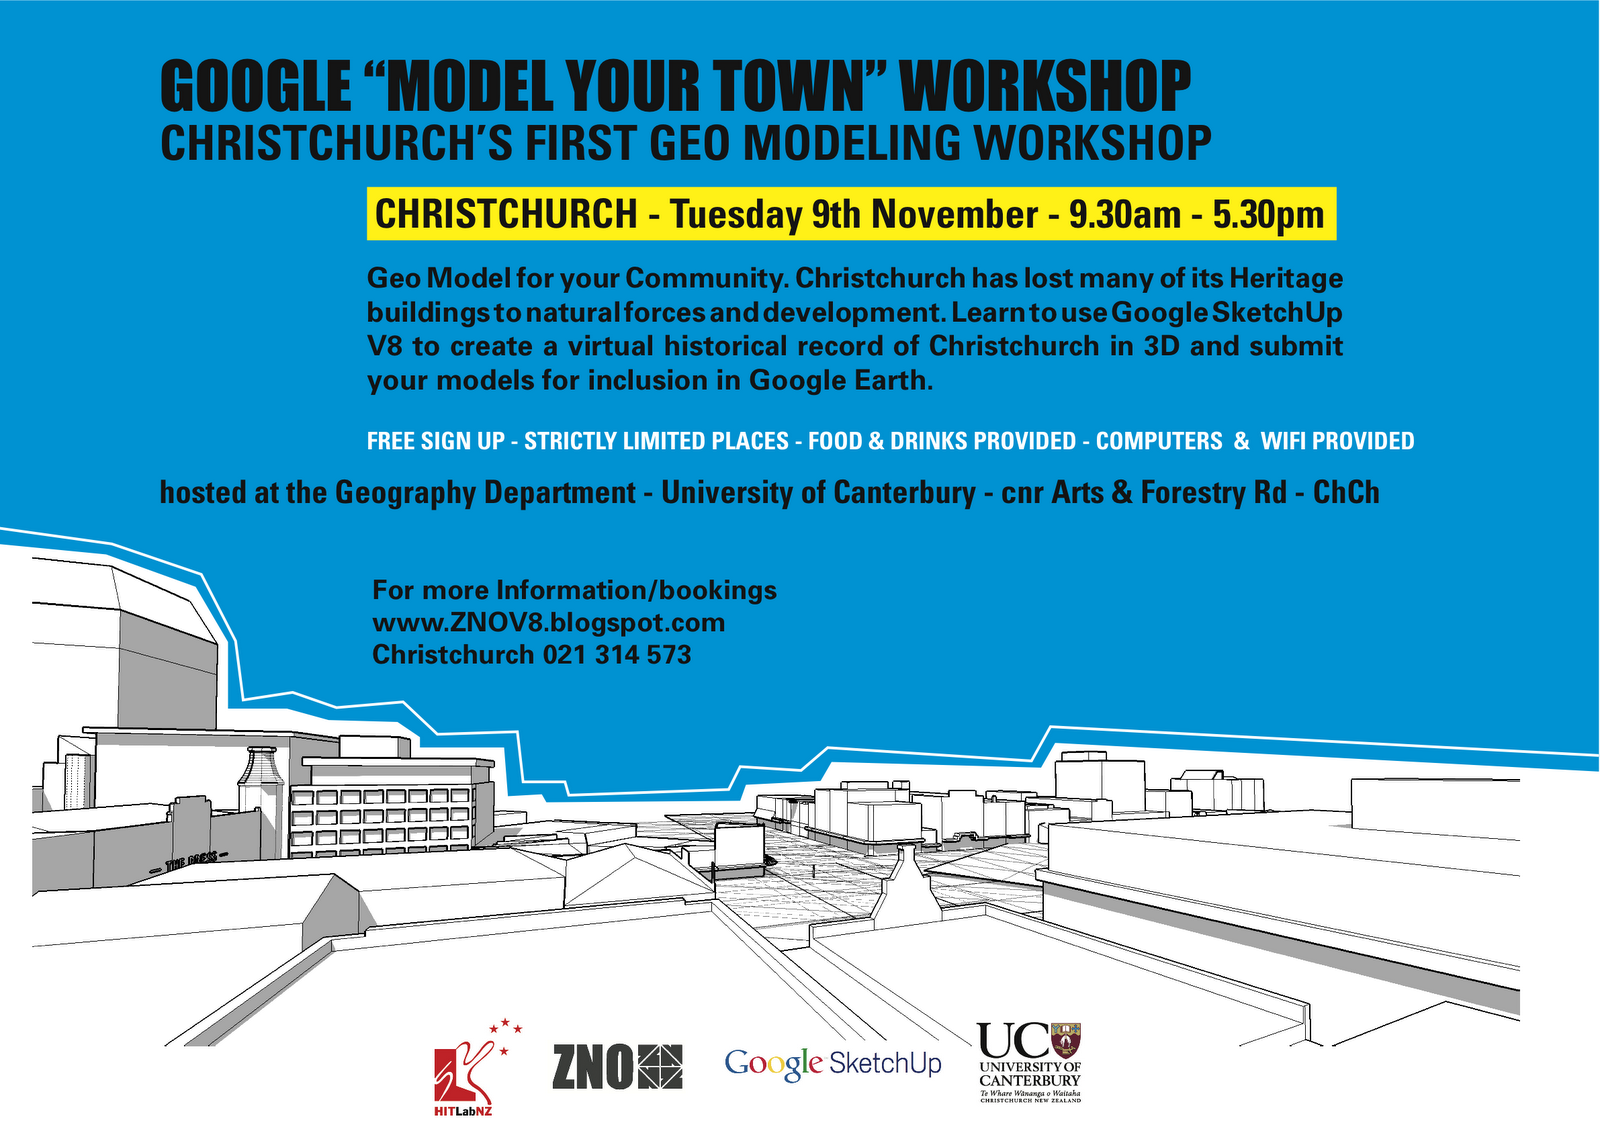 Zno google sketchup v8 workshops christchurch workshops for Landscape design courses christchurch